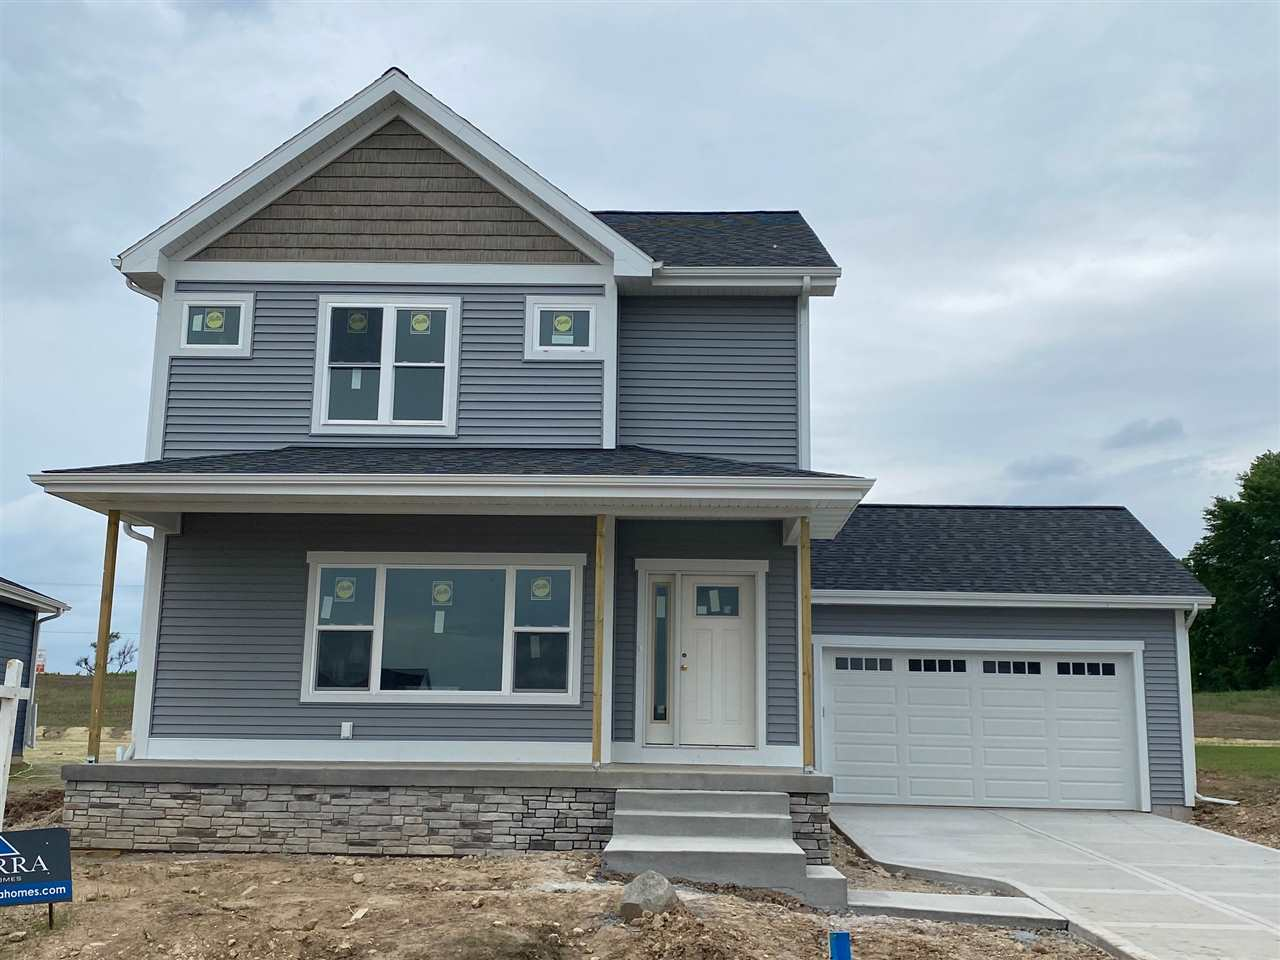 Under construction. This house will be ready for occupancy in June!  Alterra Design custom home in Fitchburg's popular new Terravessa Neighborhood!  Located right next to Oregon's state of the art, new K-6 school opening in fall of 2020.   Features to include bright and open floor plan, walk in pantry, large kitchen island, 2nd floor laundry, large mudroom, and walk in closets in all the bedrooms.  Finished lower level includes large family room, 4th bedroom, and full bath.